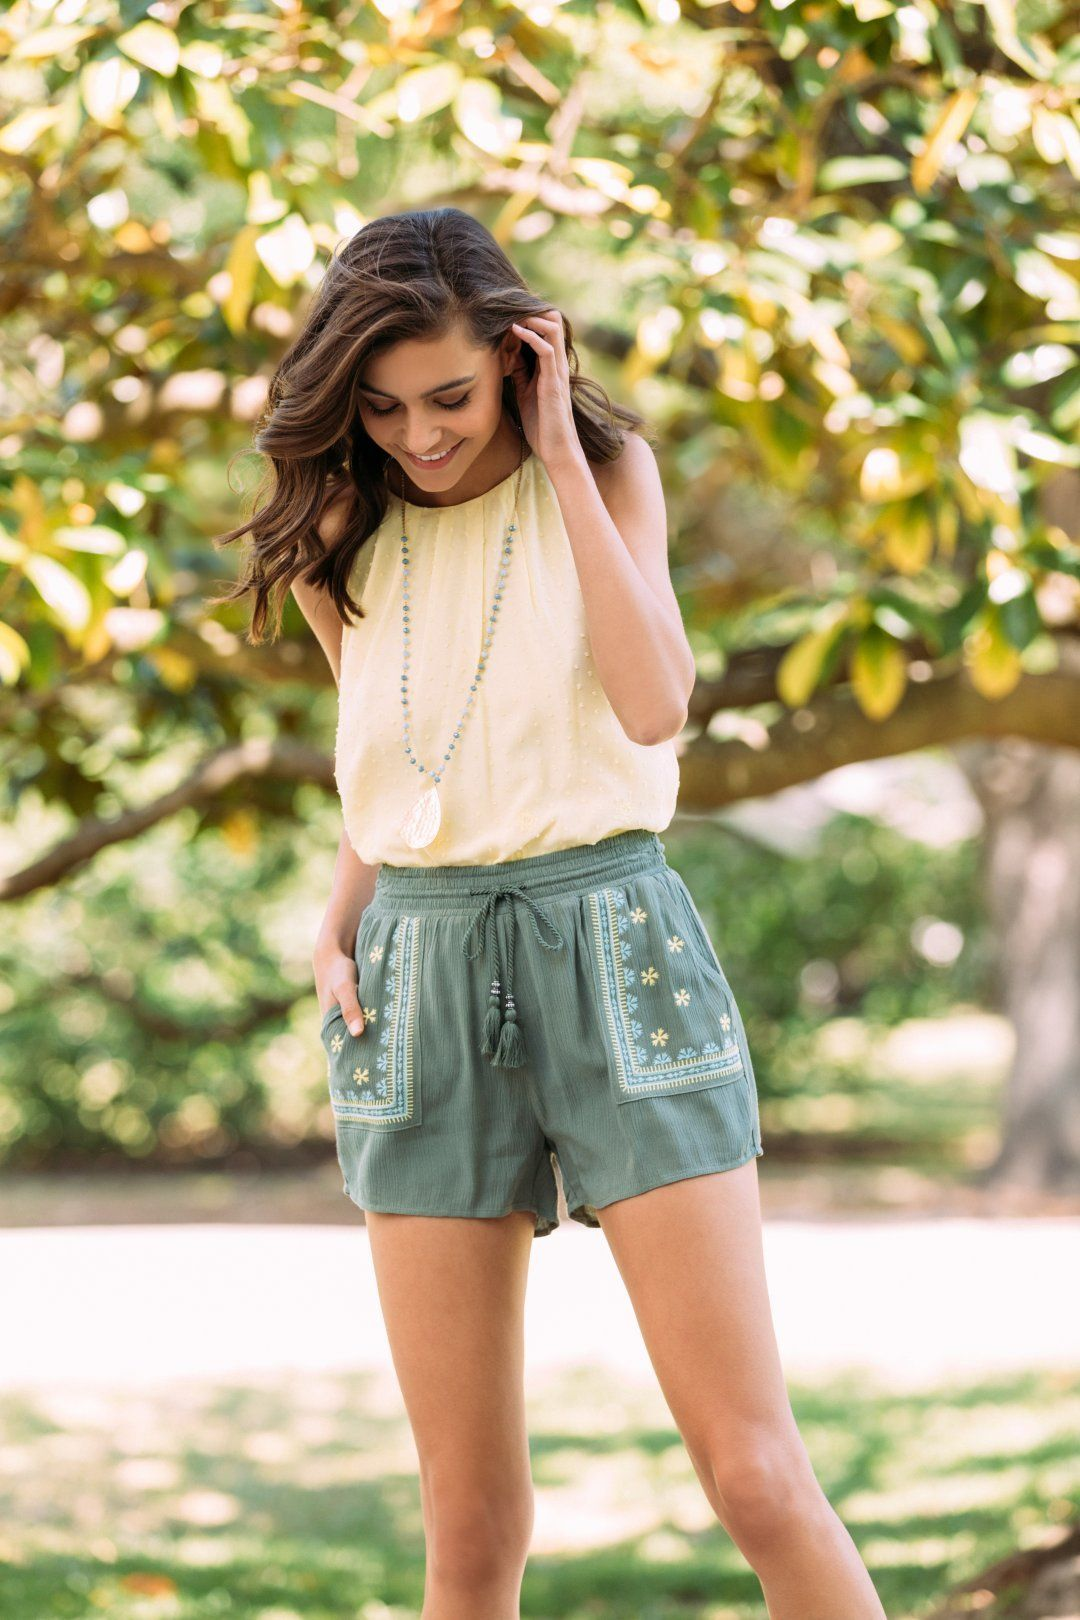 404 Error Cute Outfits With Shorts Casual Summer Outfits Summer Outfits Women [ 1620 x 1080 Pixel ]